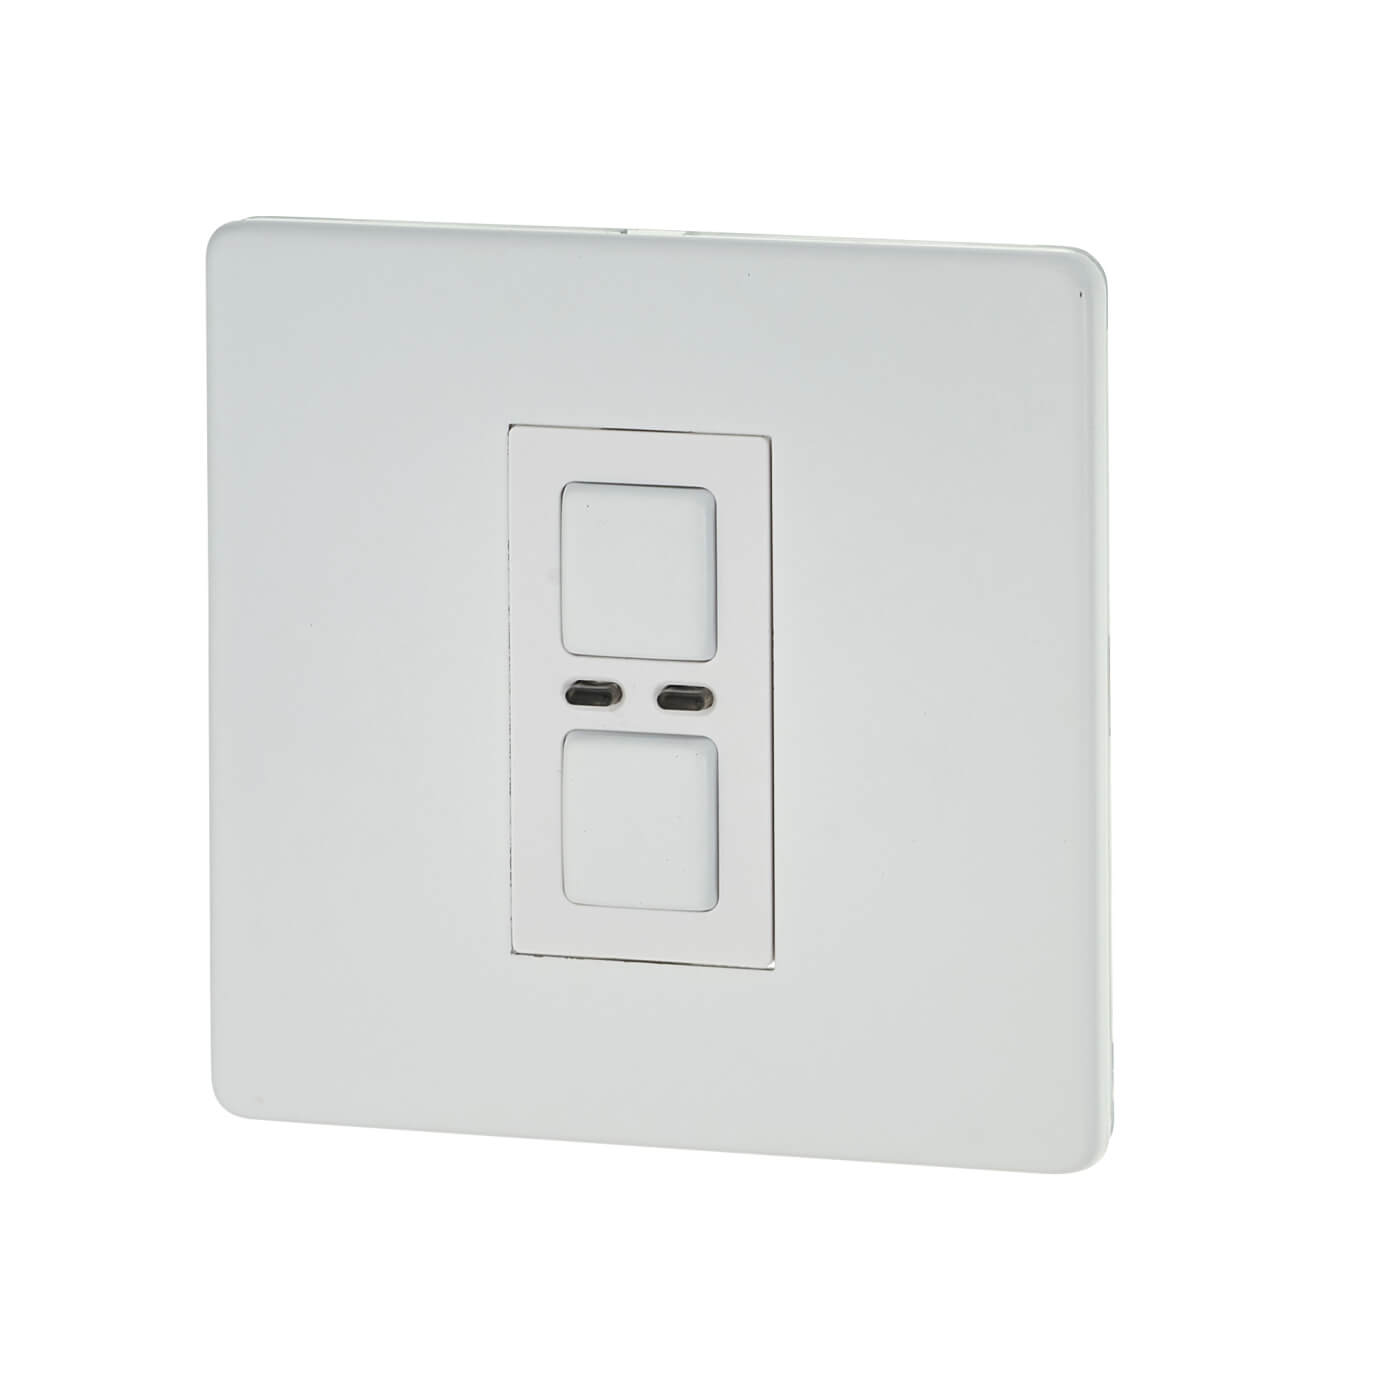 Lightwaverf 1 Gang 2 Way 250w Smart Dimmer Switch White Use A Relay Or With The 45 Watt Higher Halogen Lights Back